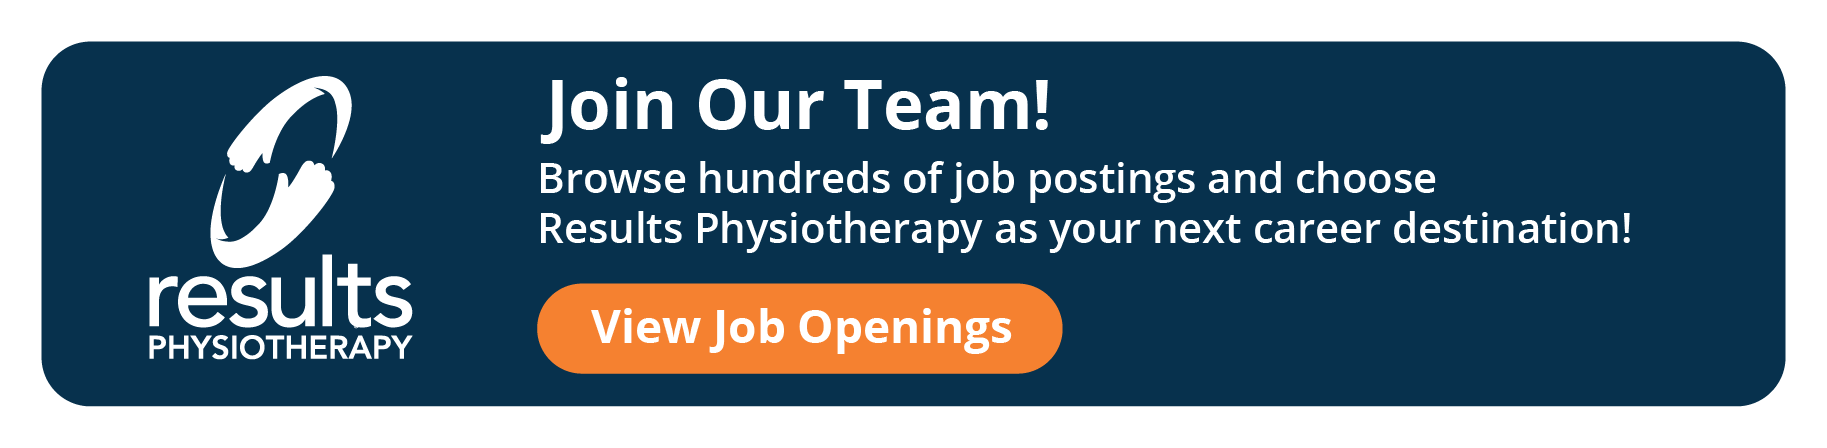 Join Our Team - Results Physiotherapy